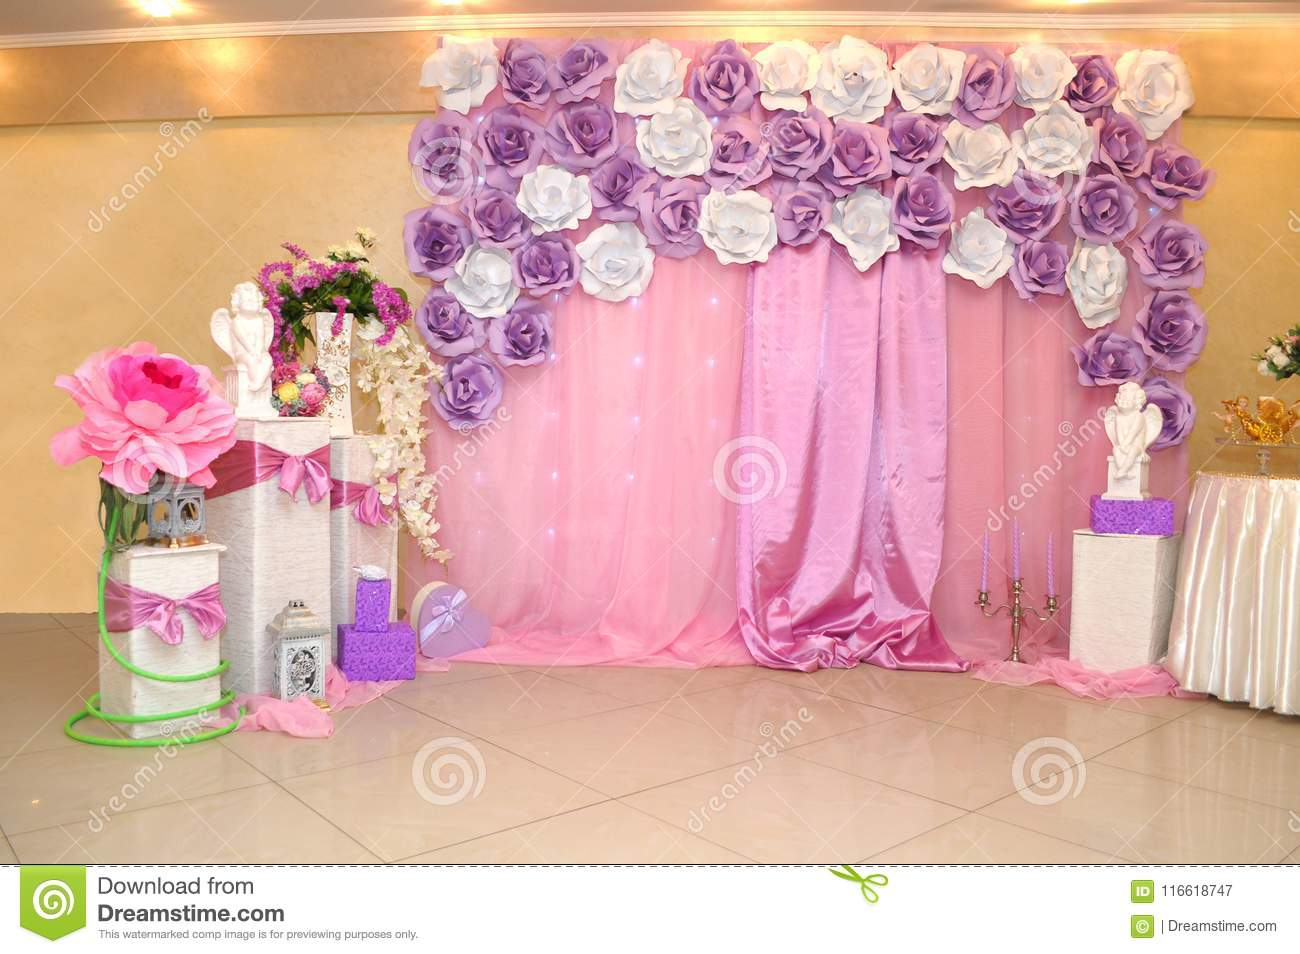 Photo Wall For Childrens Birthday Photo Wall For Girls Stock